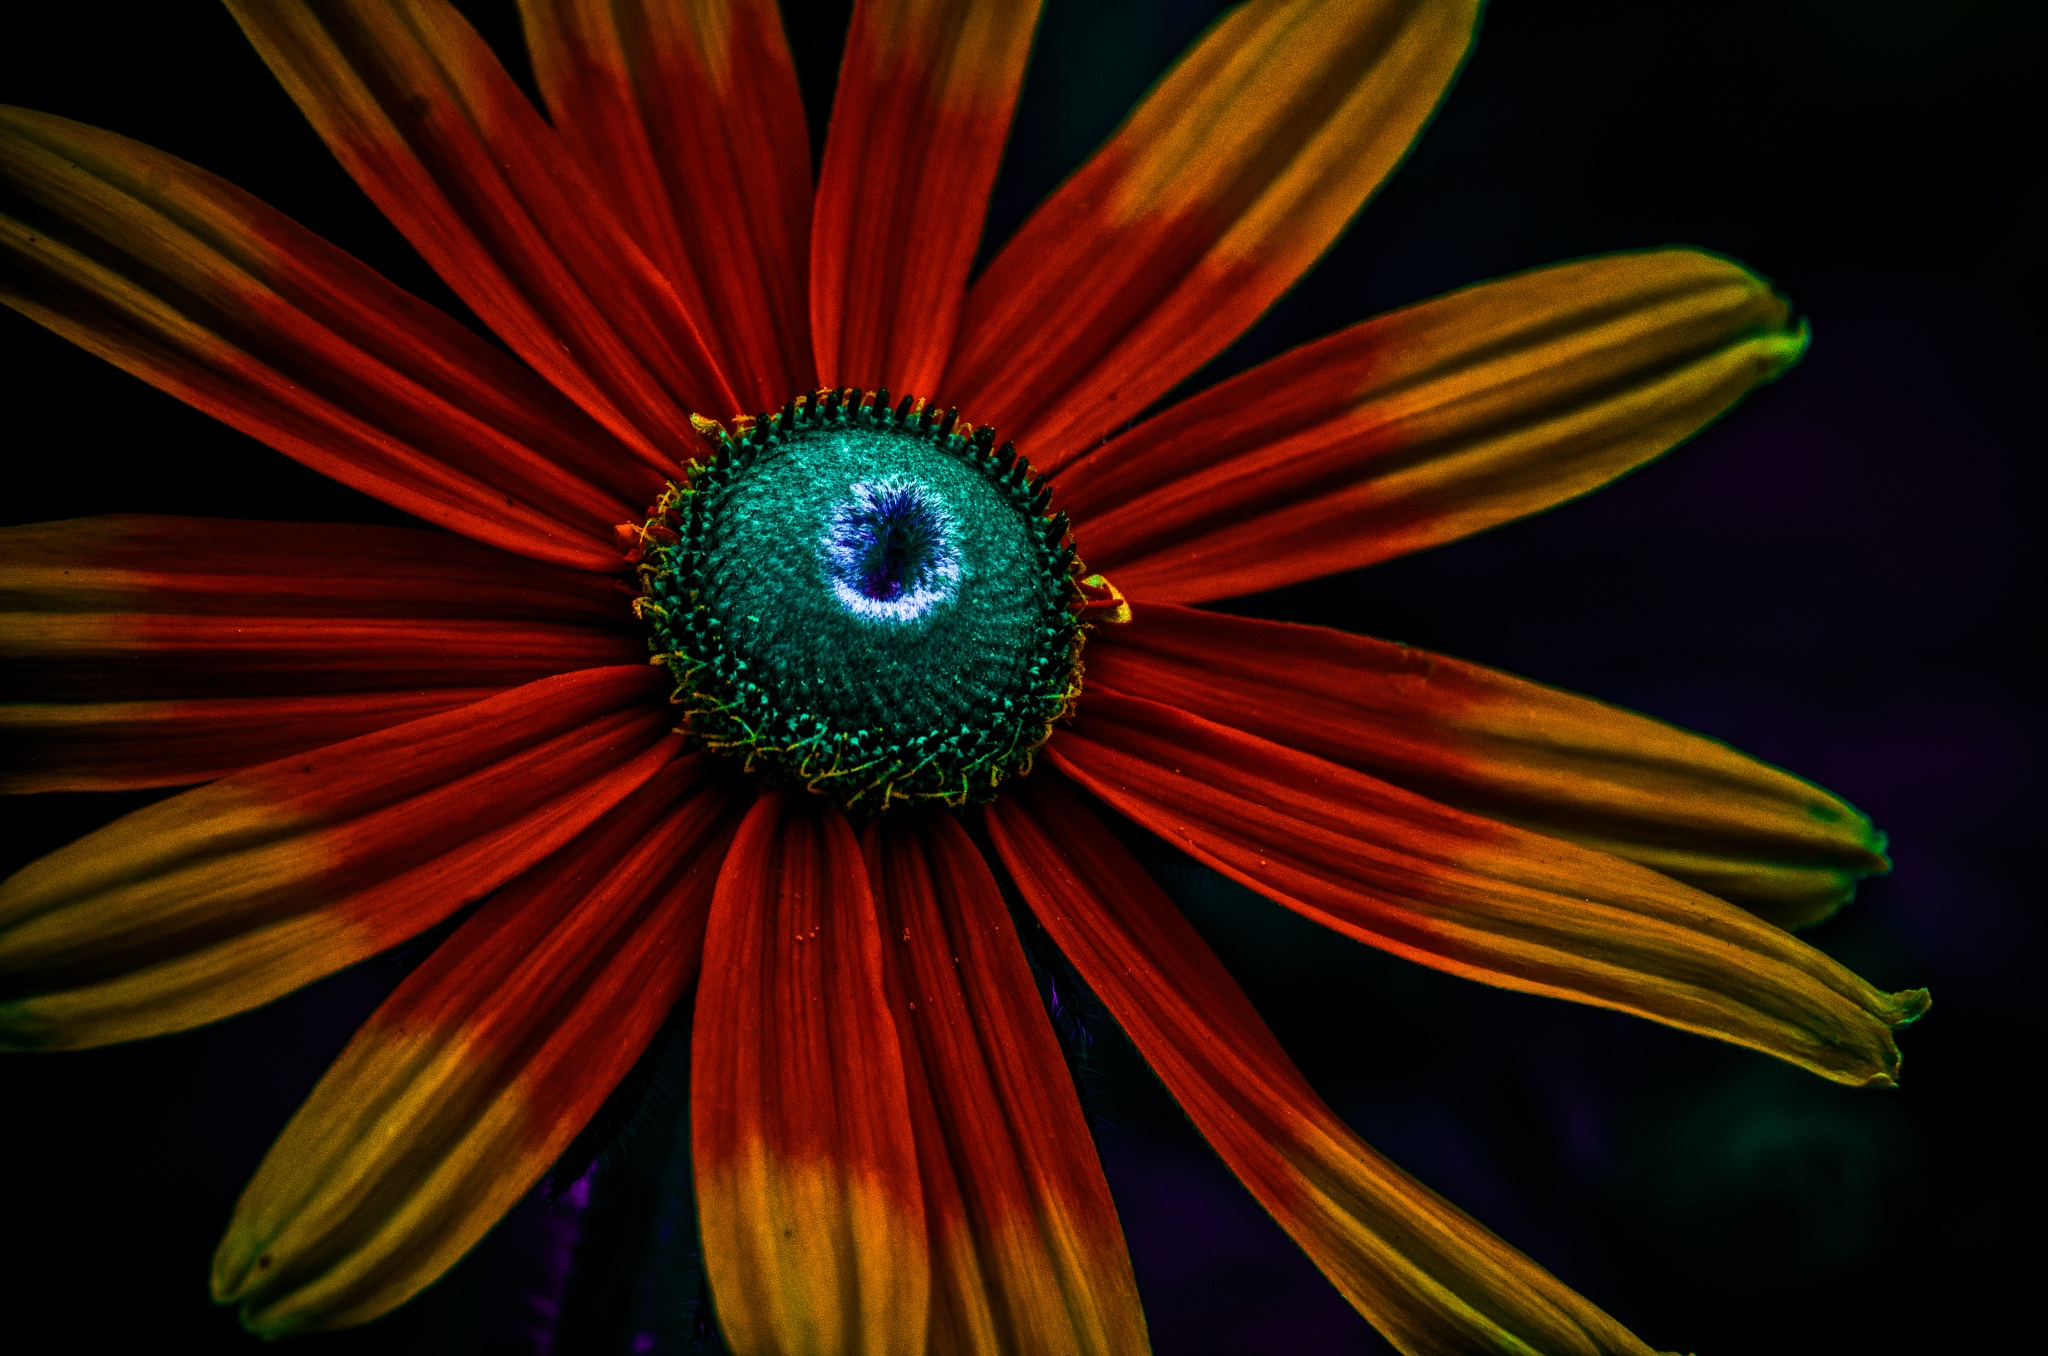 Coneflower All Dressed Up by JohnEllingson